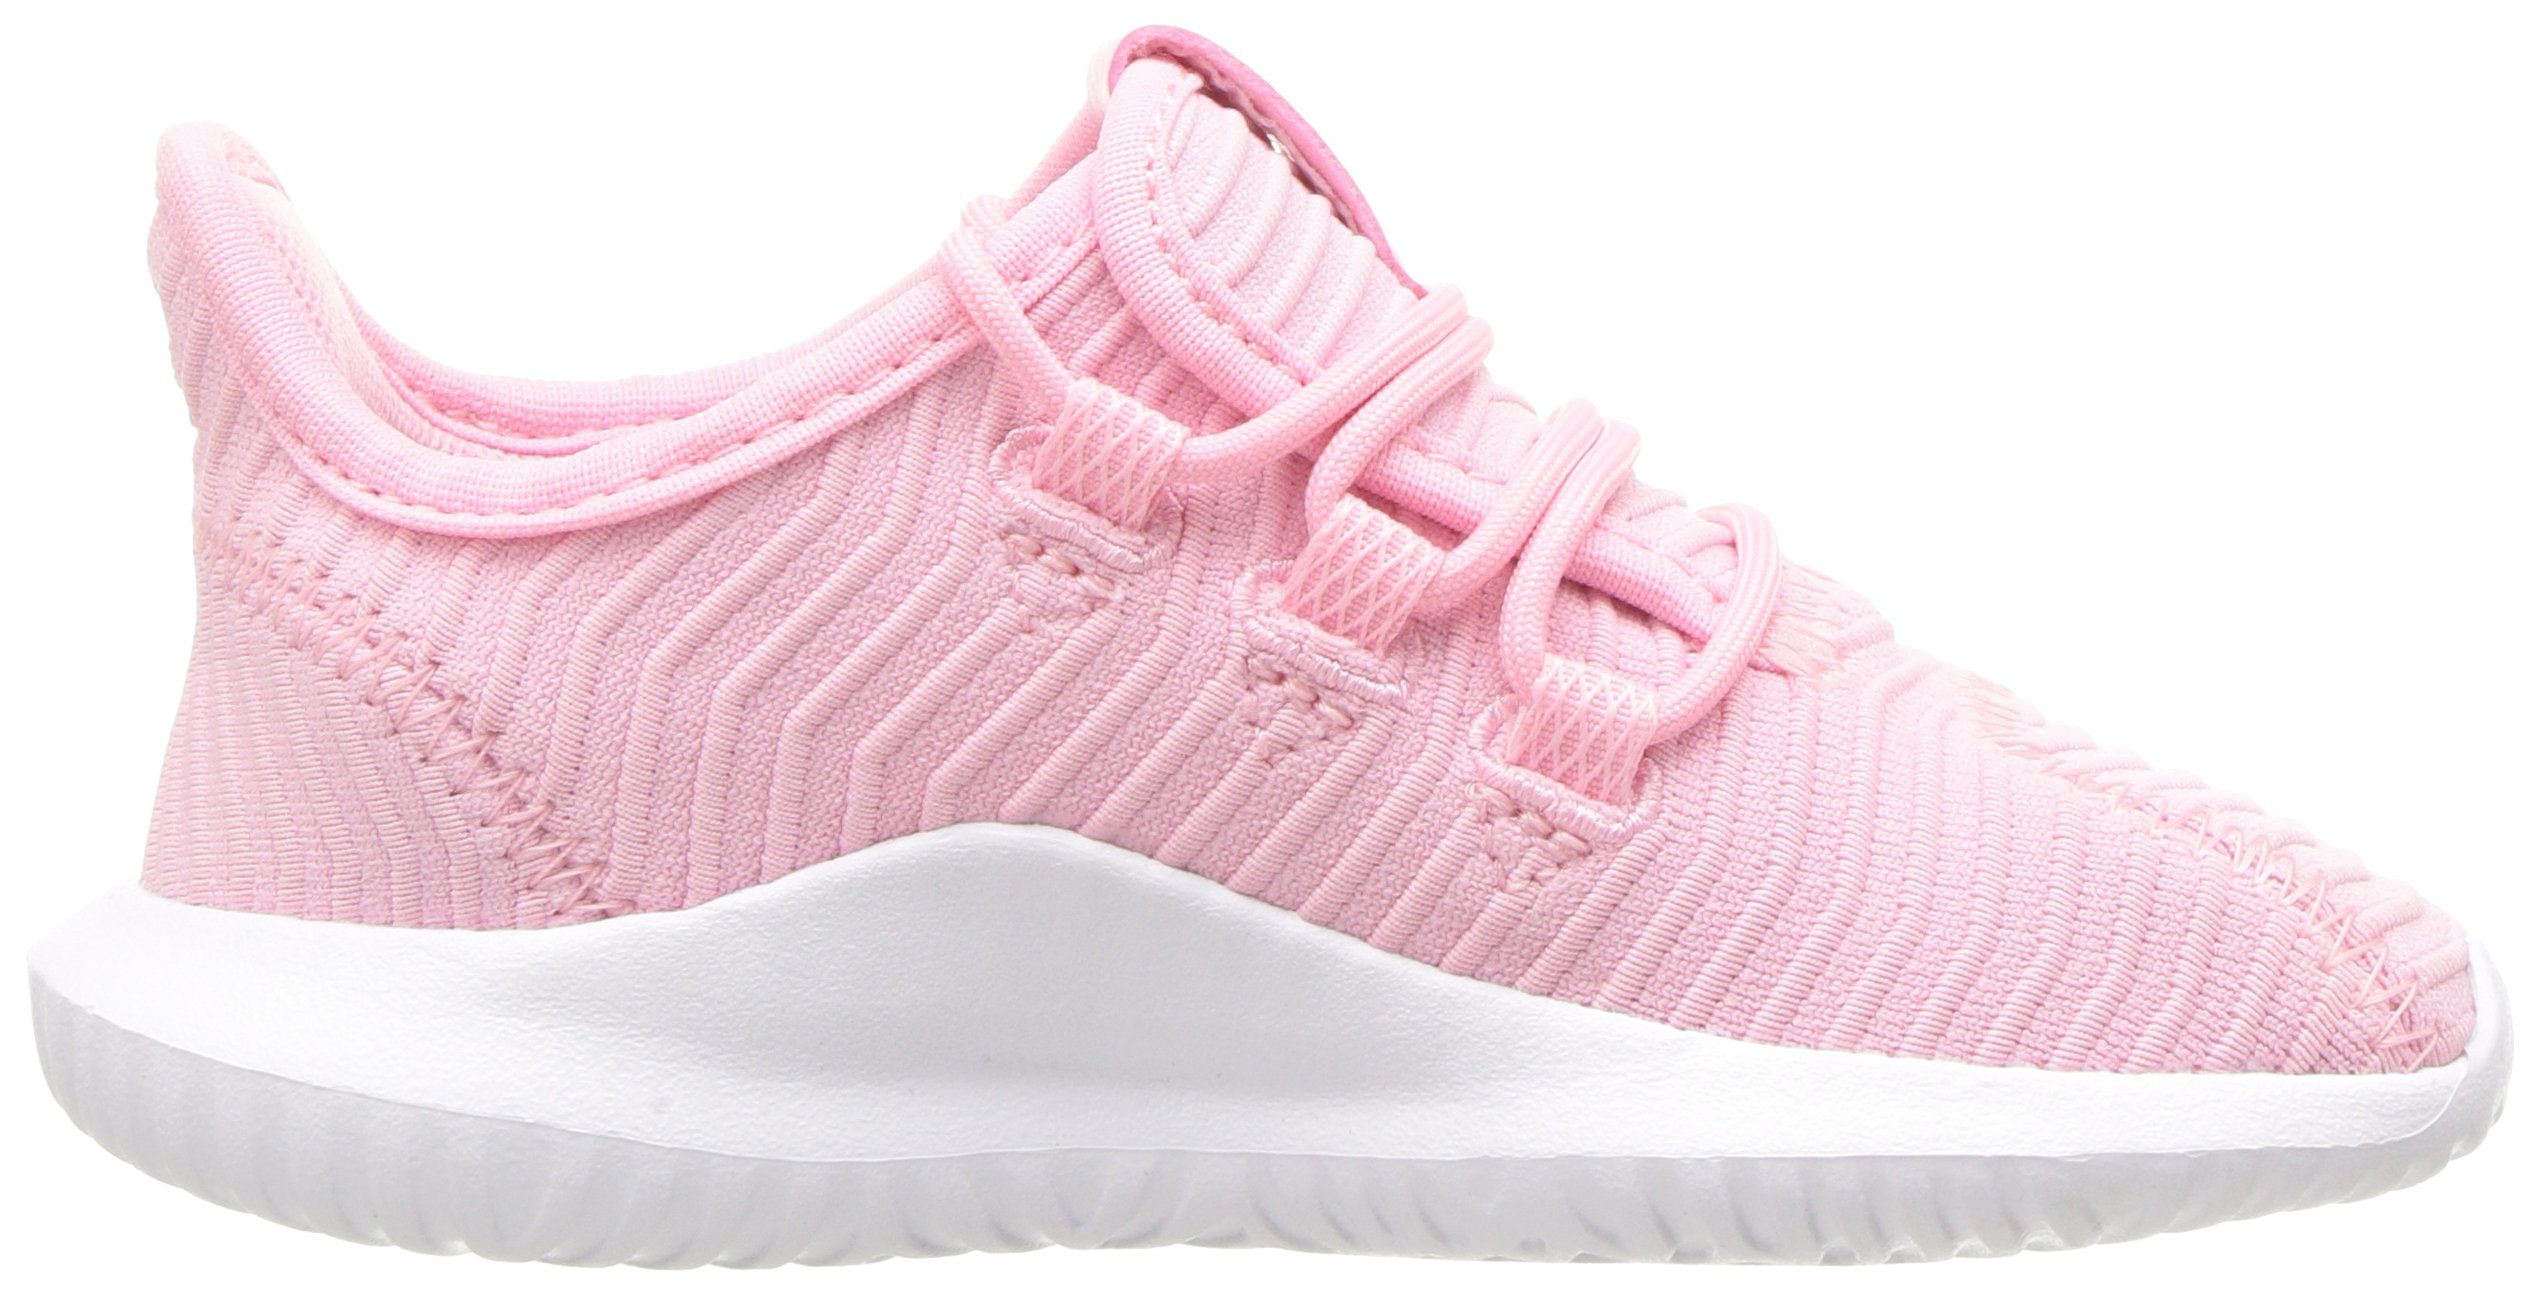 adidas Originals Baby Tubular Shadow Light Pink/White, 7K M US Toddler by adidas Originals (Image #6)